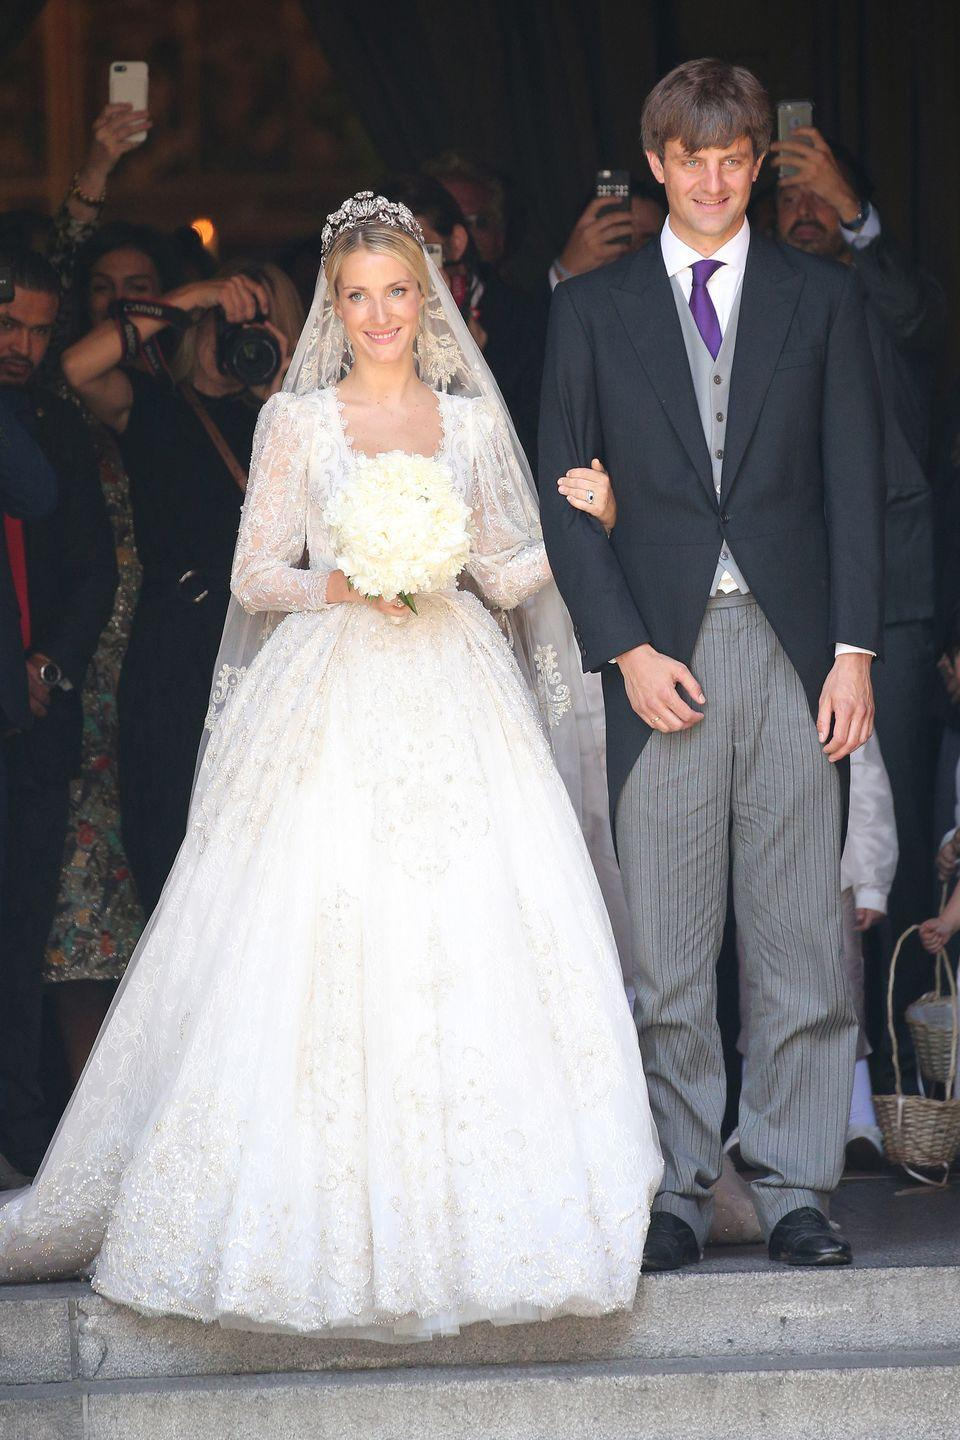 <p>This couple met at a party in London in 2011, and the Prince proposed to Malysheva, a Russian fashion designer, on the Greek island of Spetses in 2016. The couple wed in Germany in July 2017.</p>